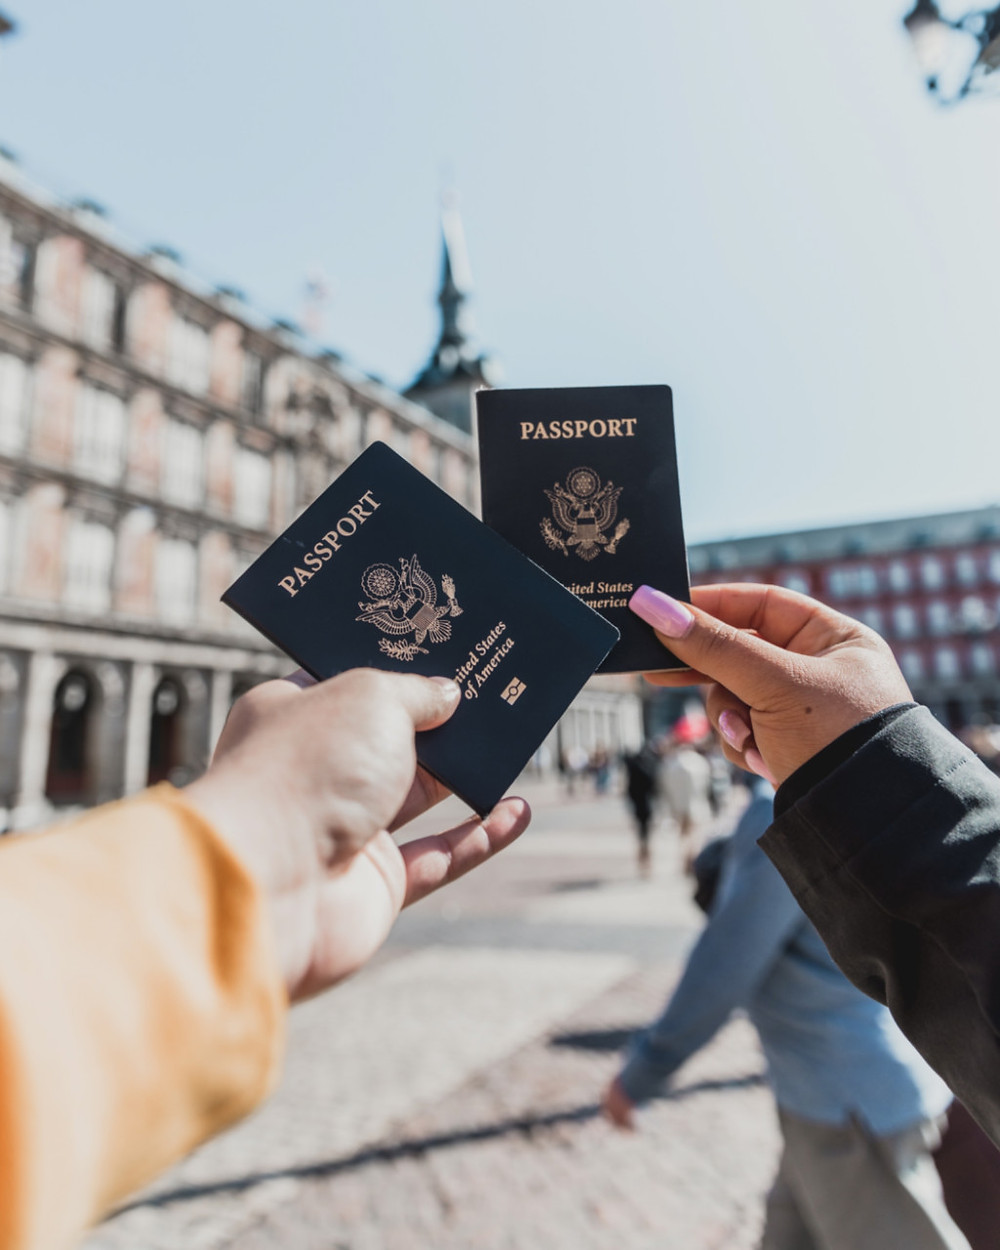 Friends showing their US passports in Madrid, Spain